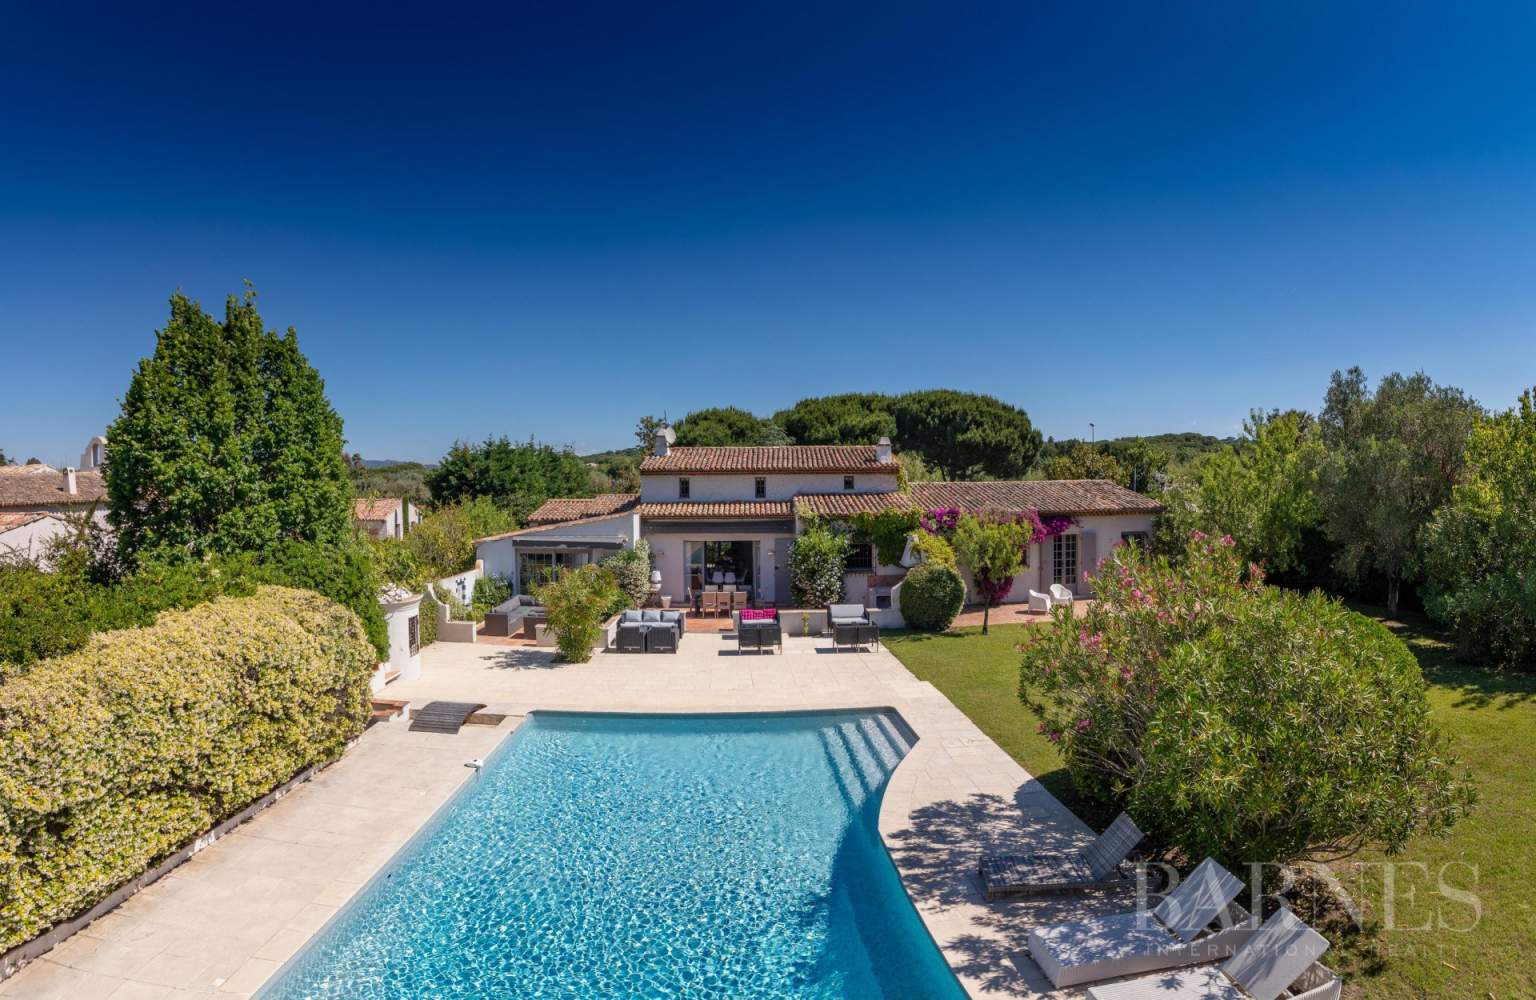 SAINT-TROPEZ - Les Salins / Canebiers - 7 bedrooms - Pool picture 1